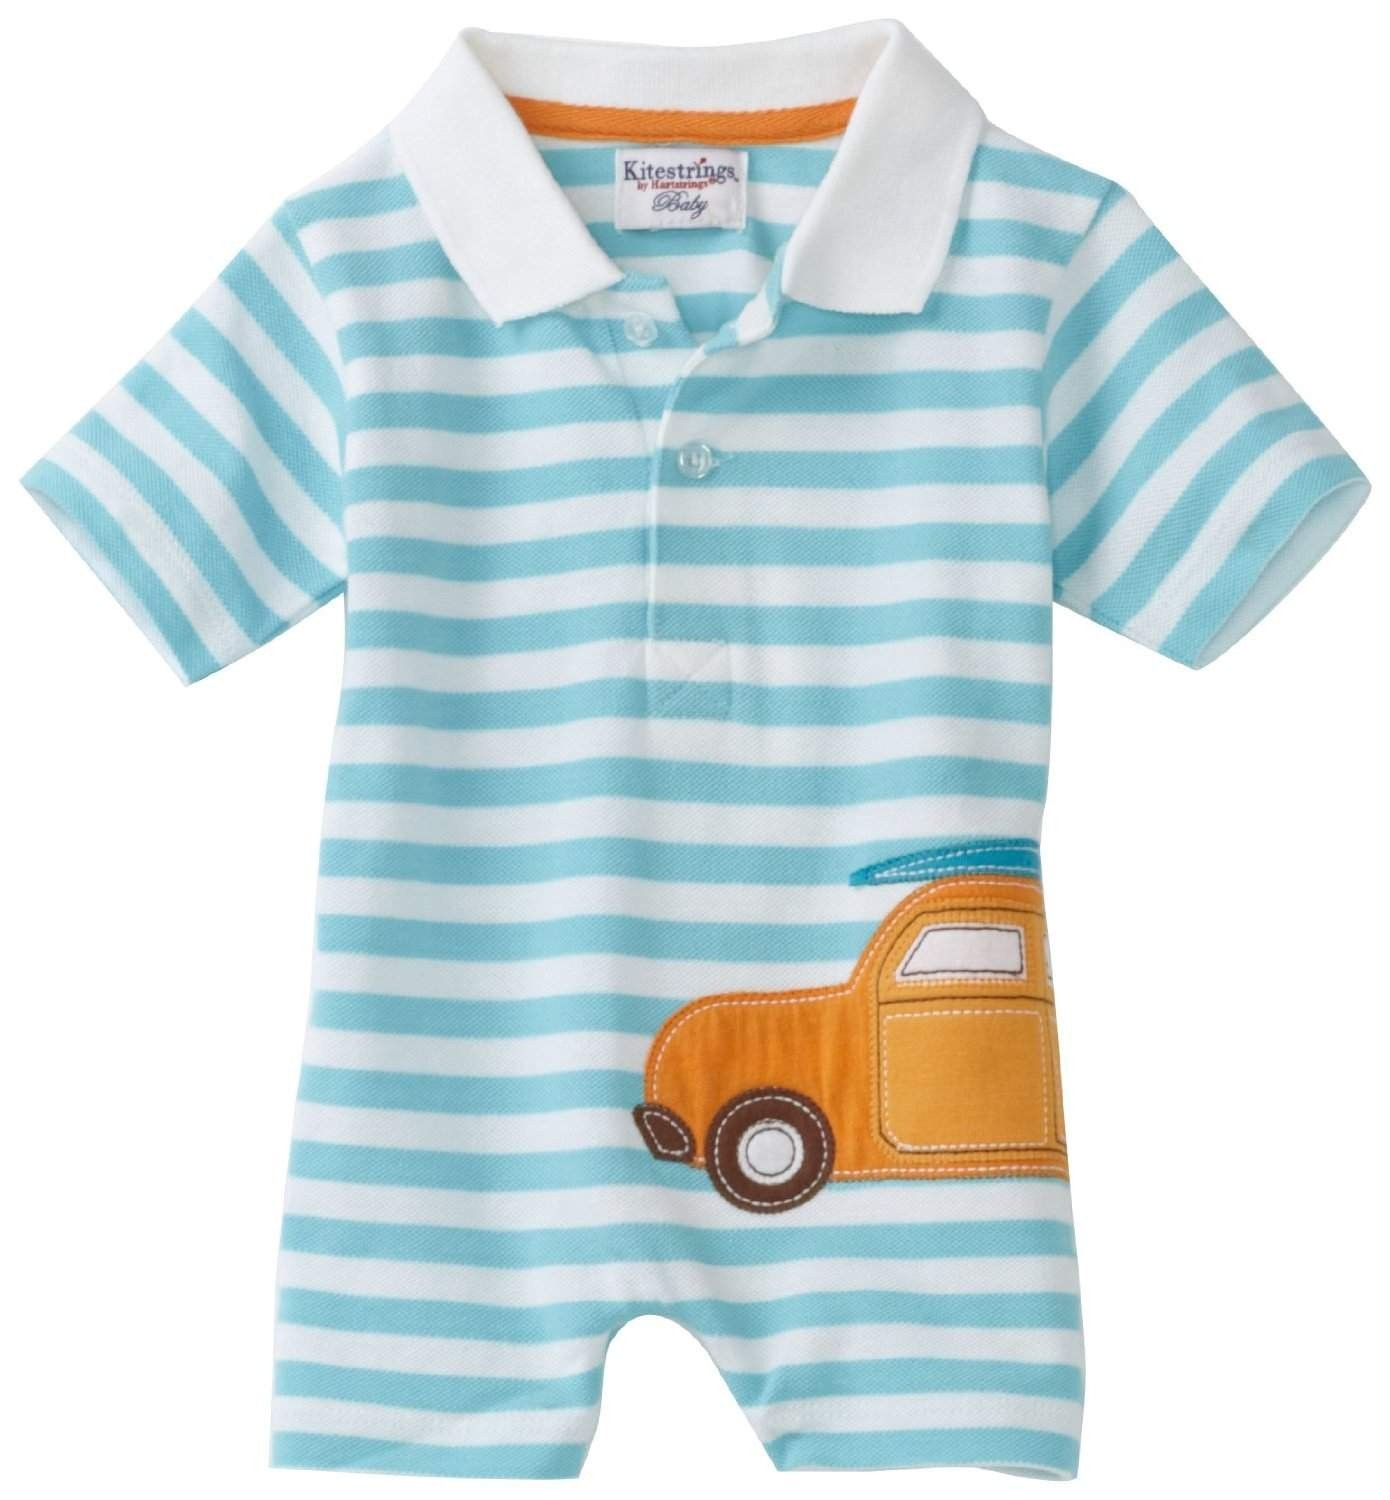 All Types of Newborn Baby Boy Clothes – careyfashion.com